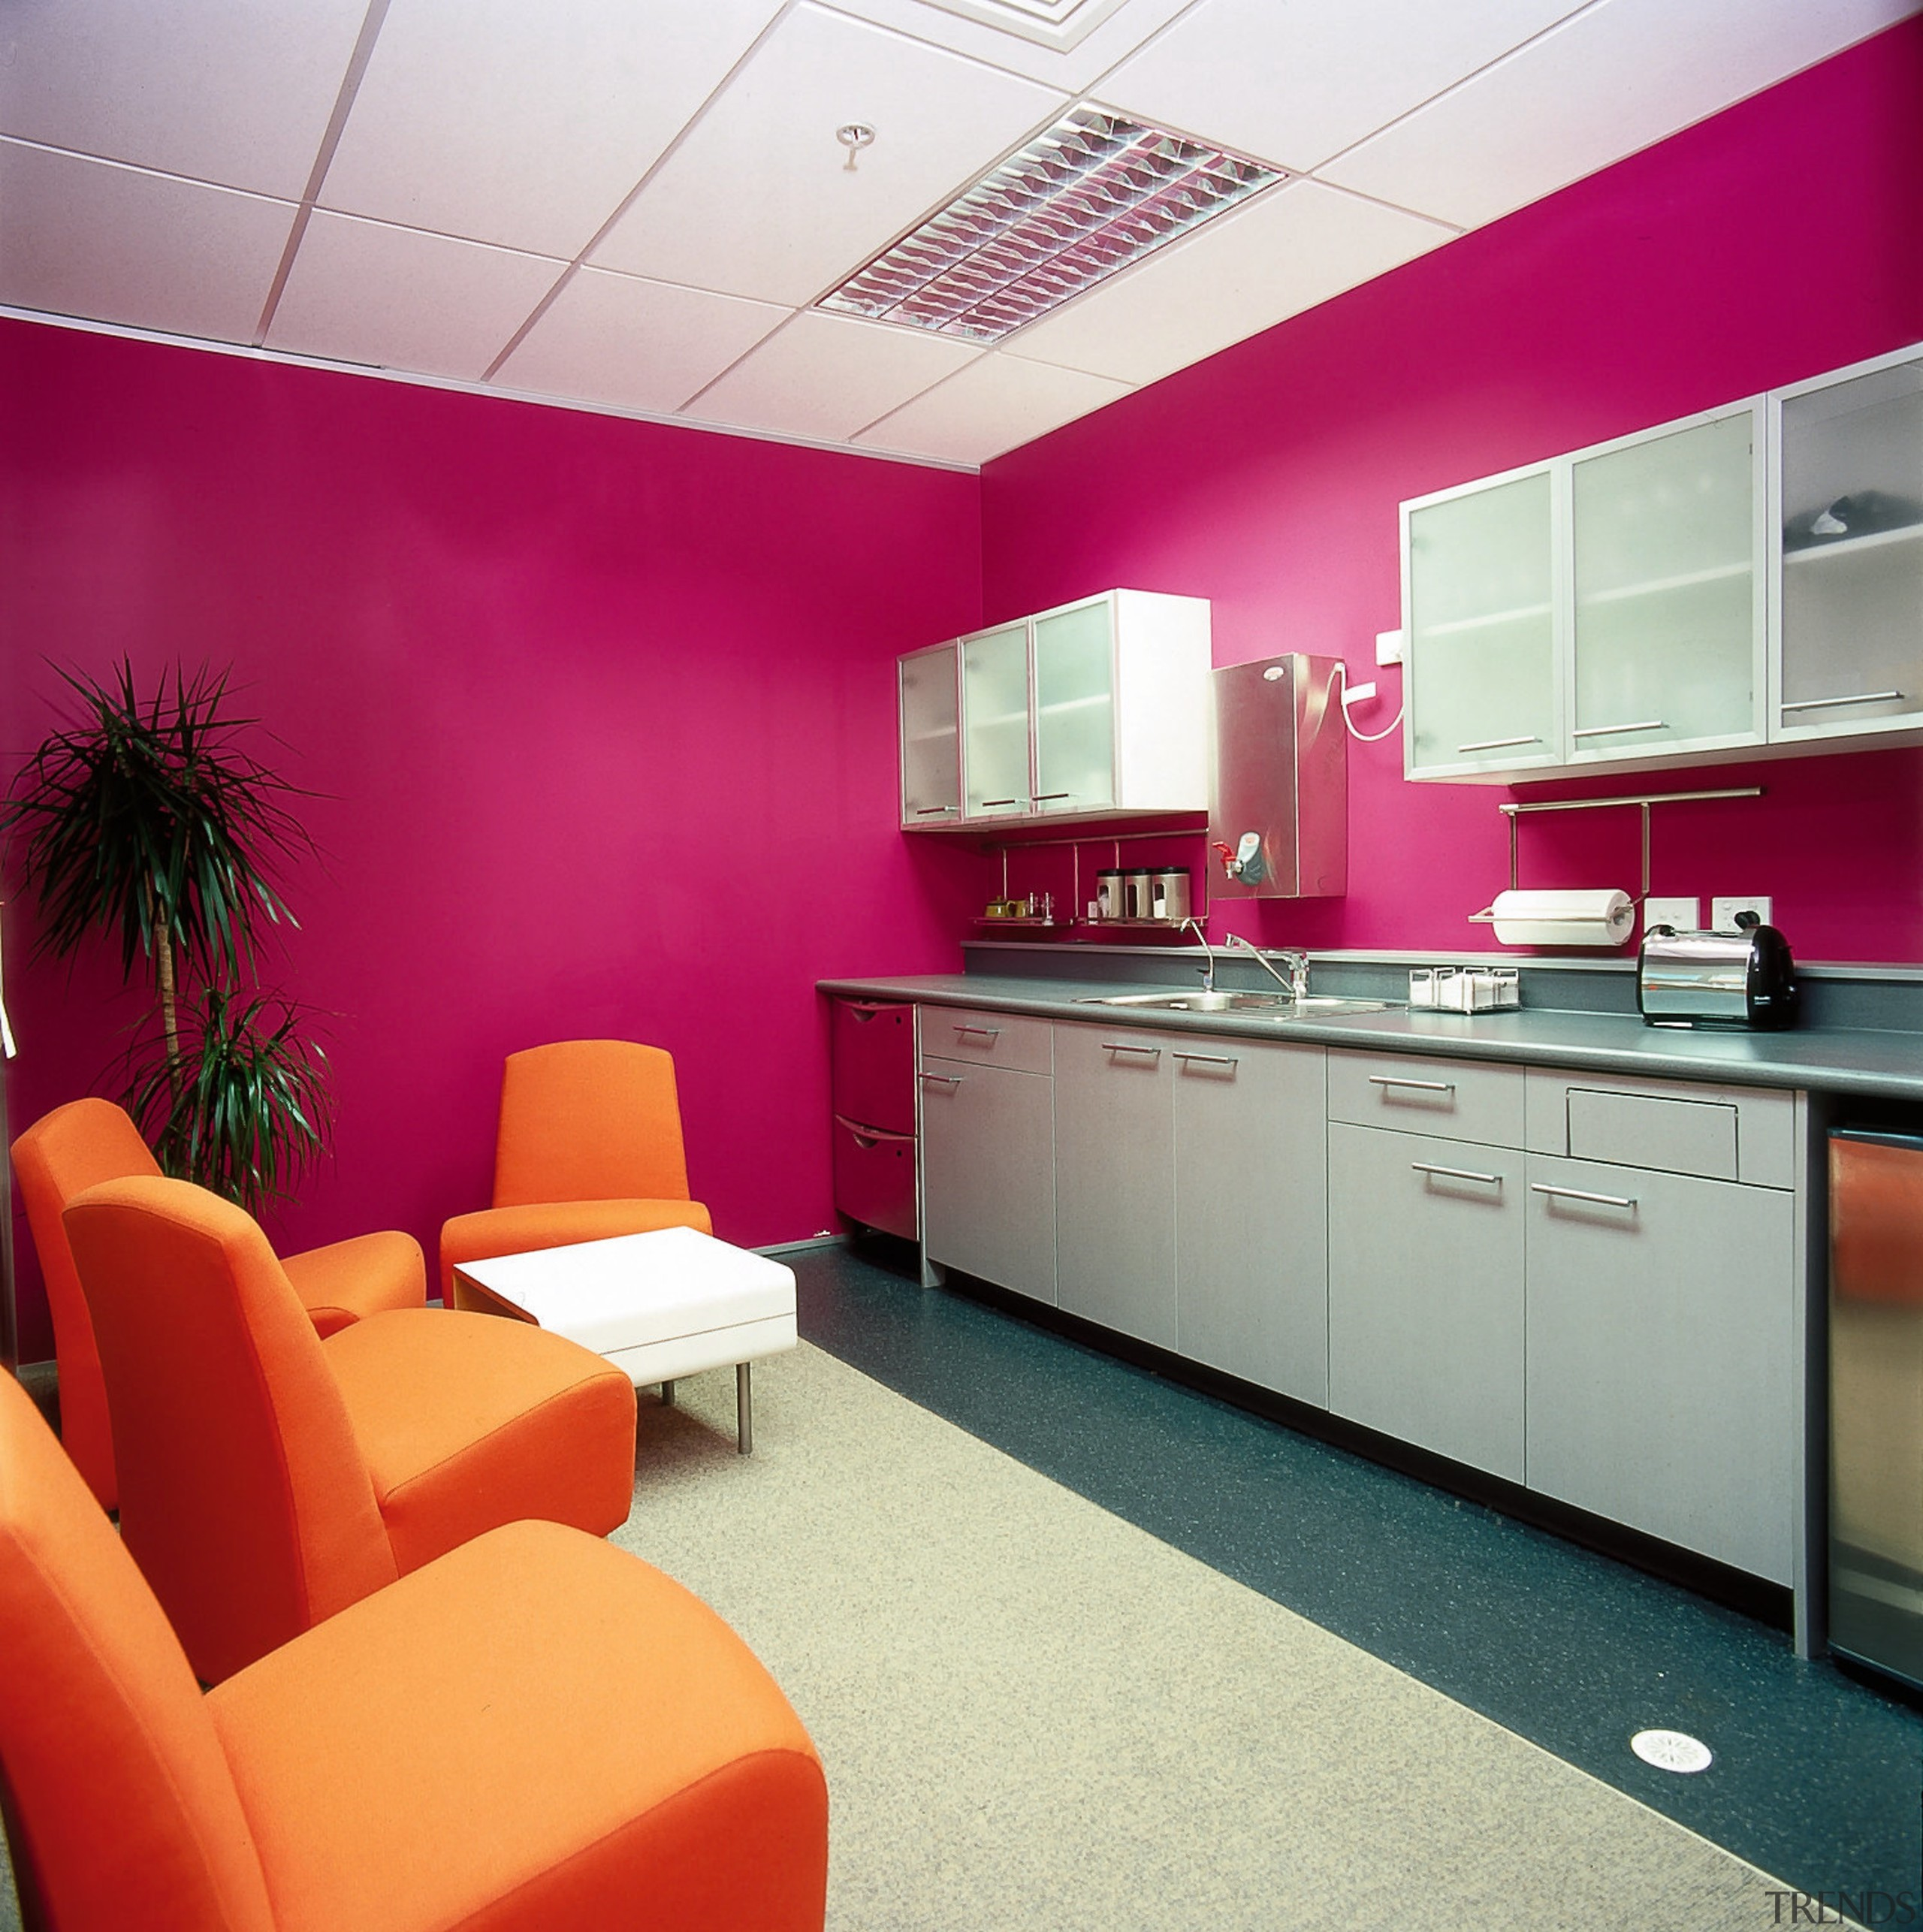 Office Kitchen Area With Pink Walls Gallery 1 Trends